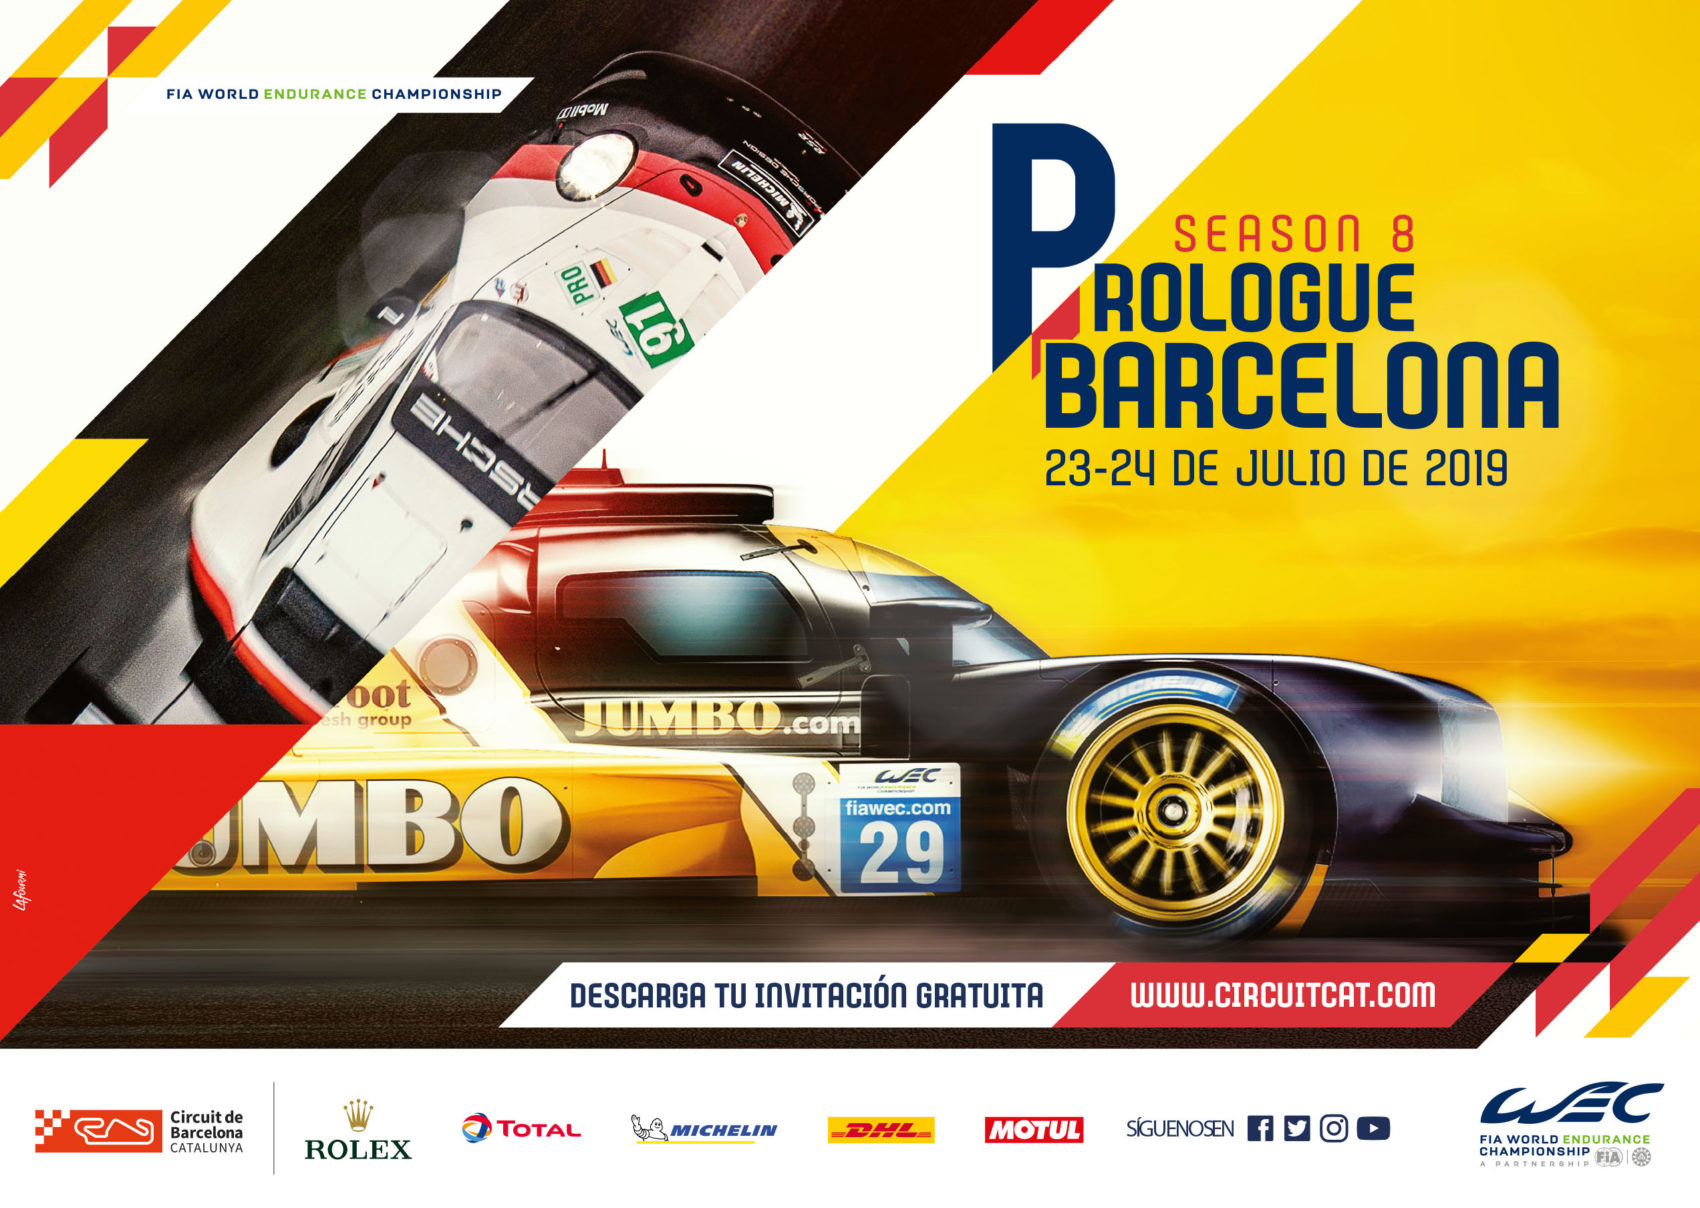 Projet_Project_WEC_FIA_world_endurance_championship_KV_barcelone